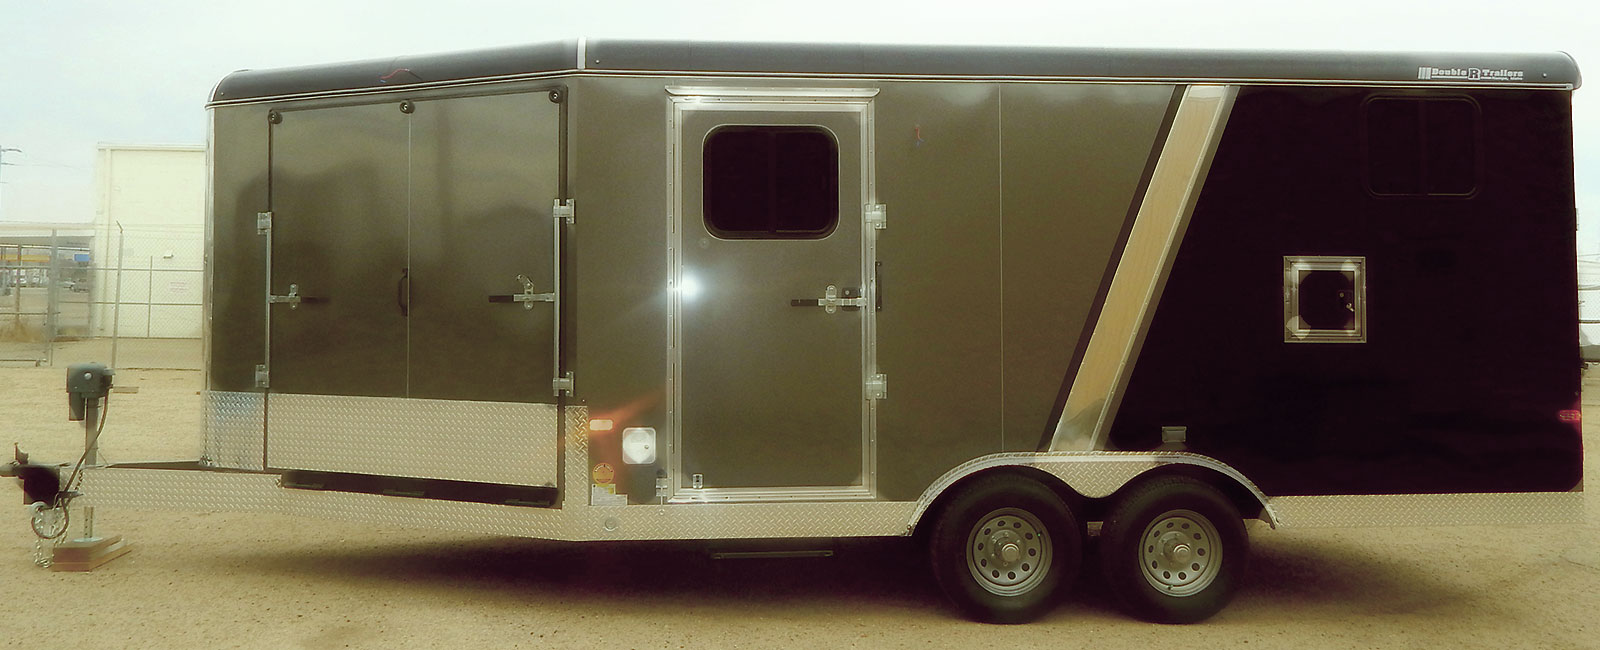 hight resolution of enclosed trailer